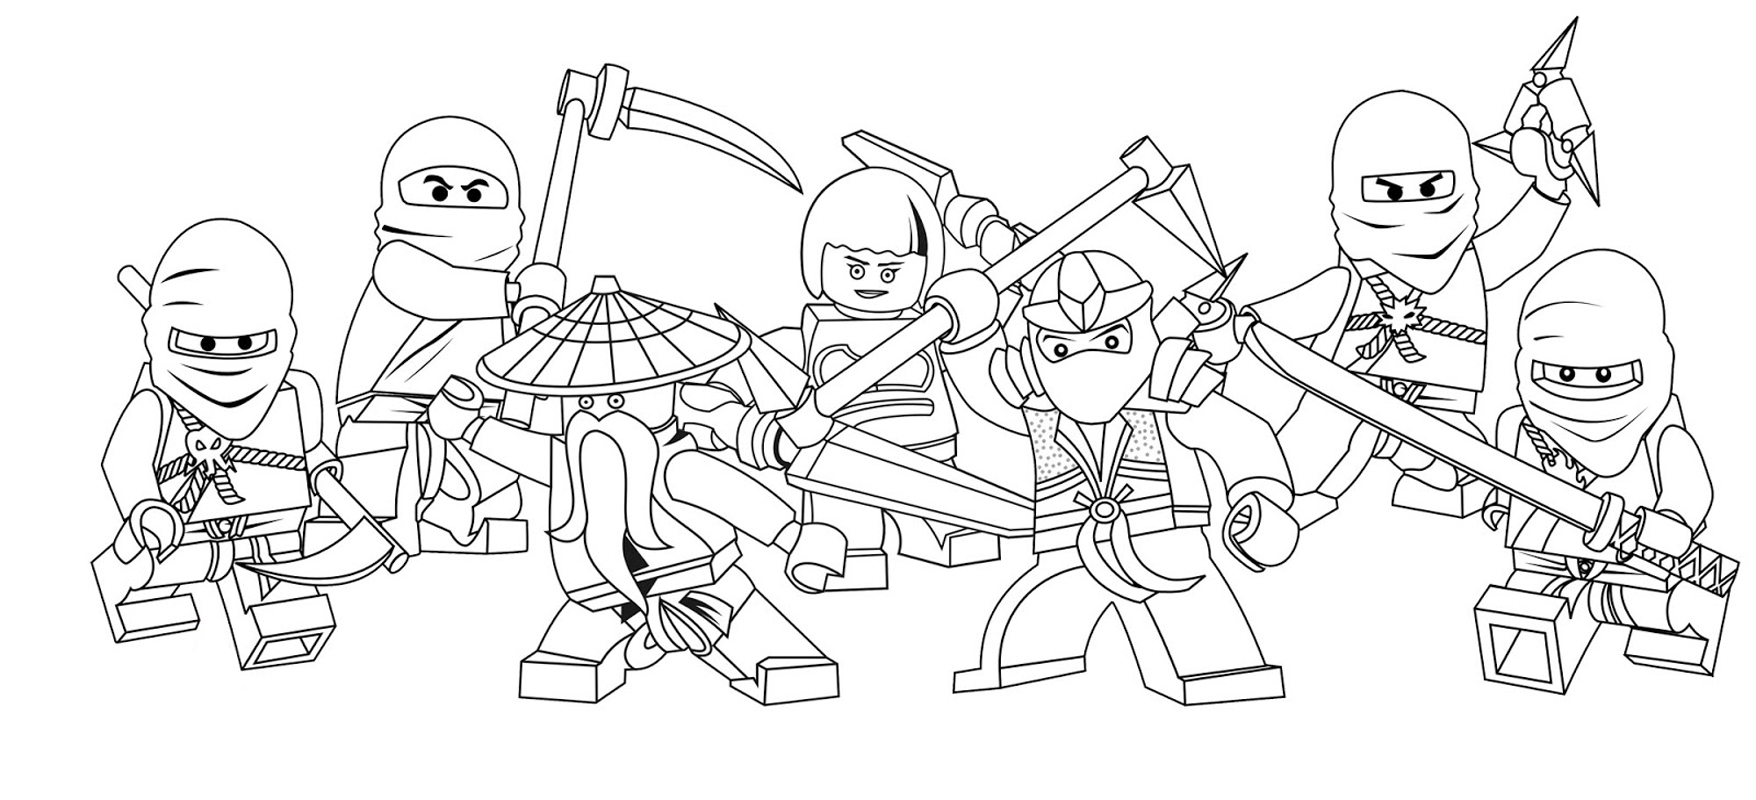 lego coloring pages - photo#26